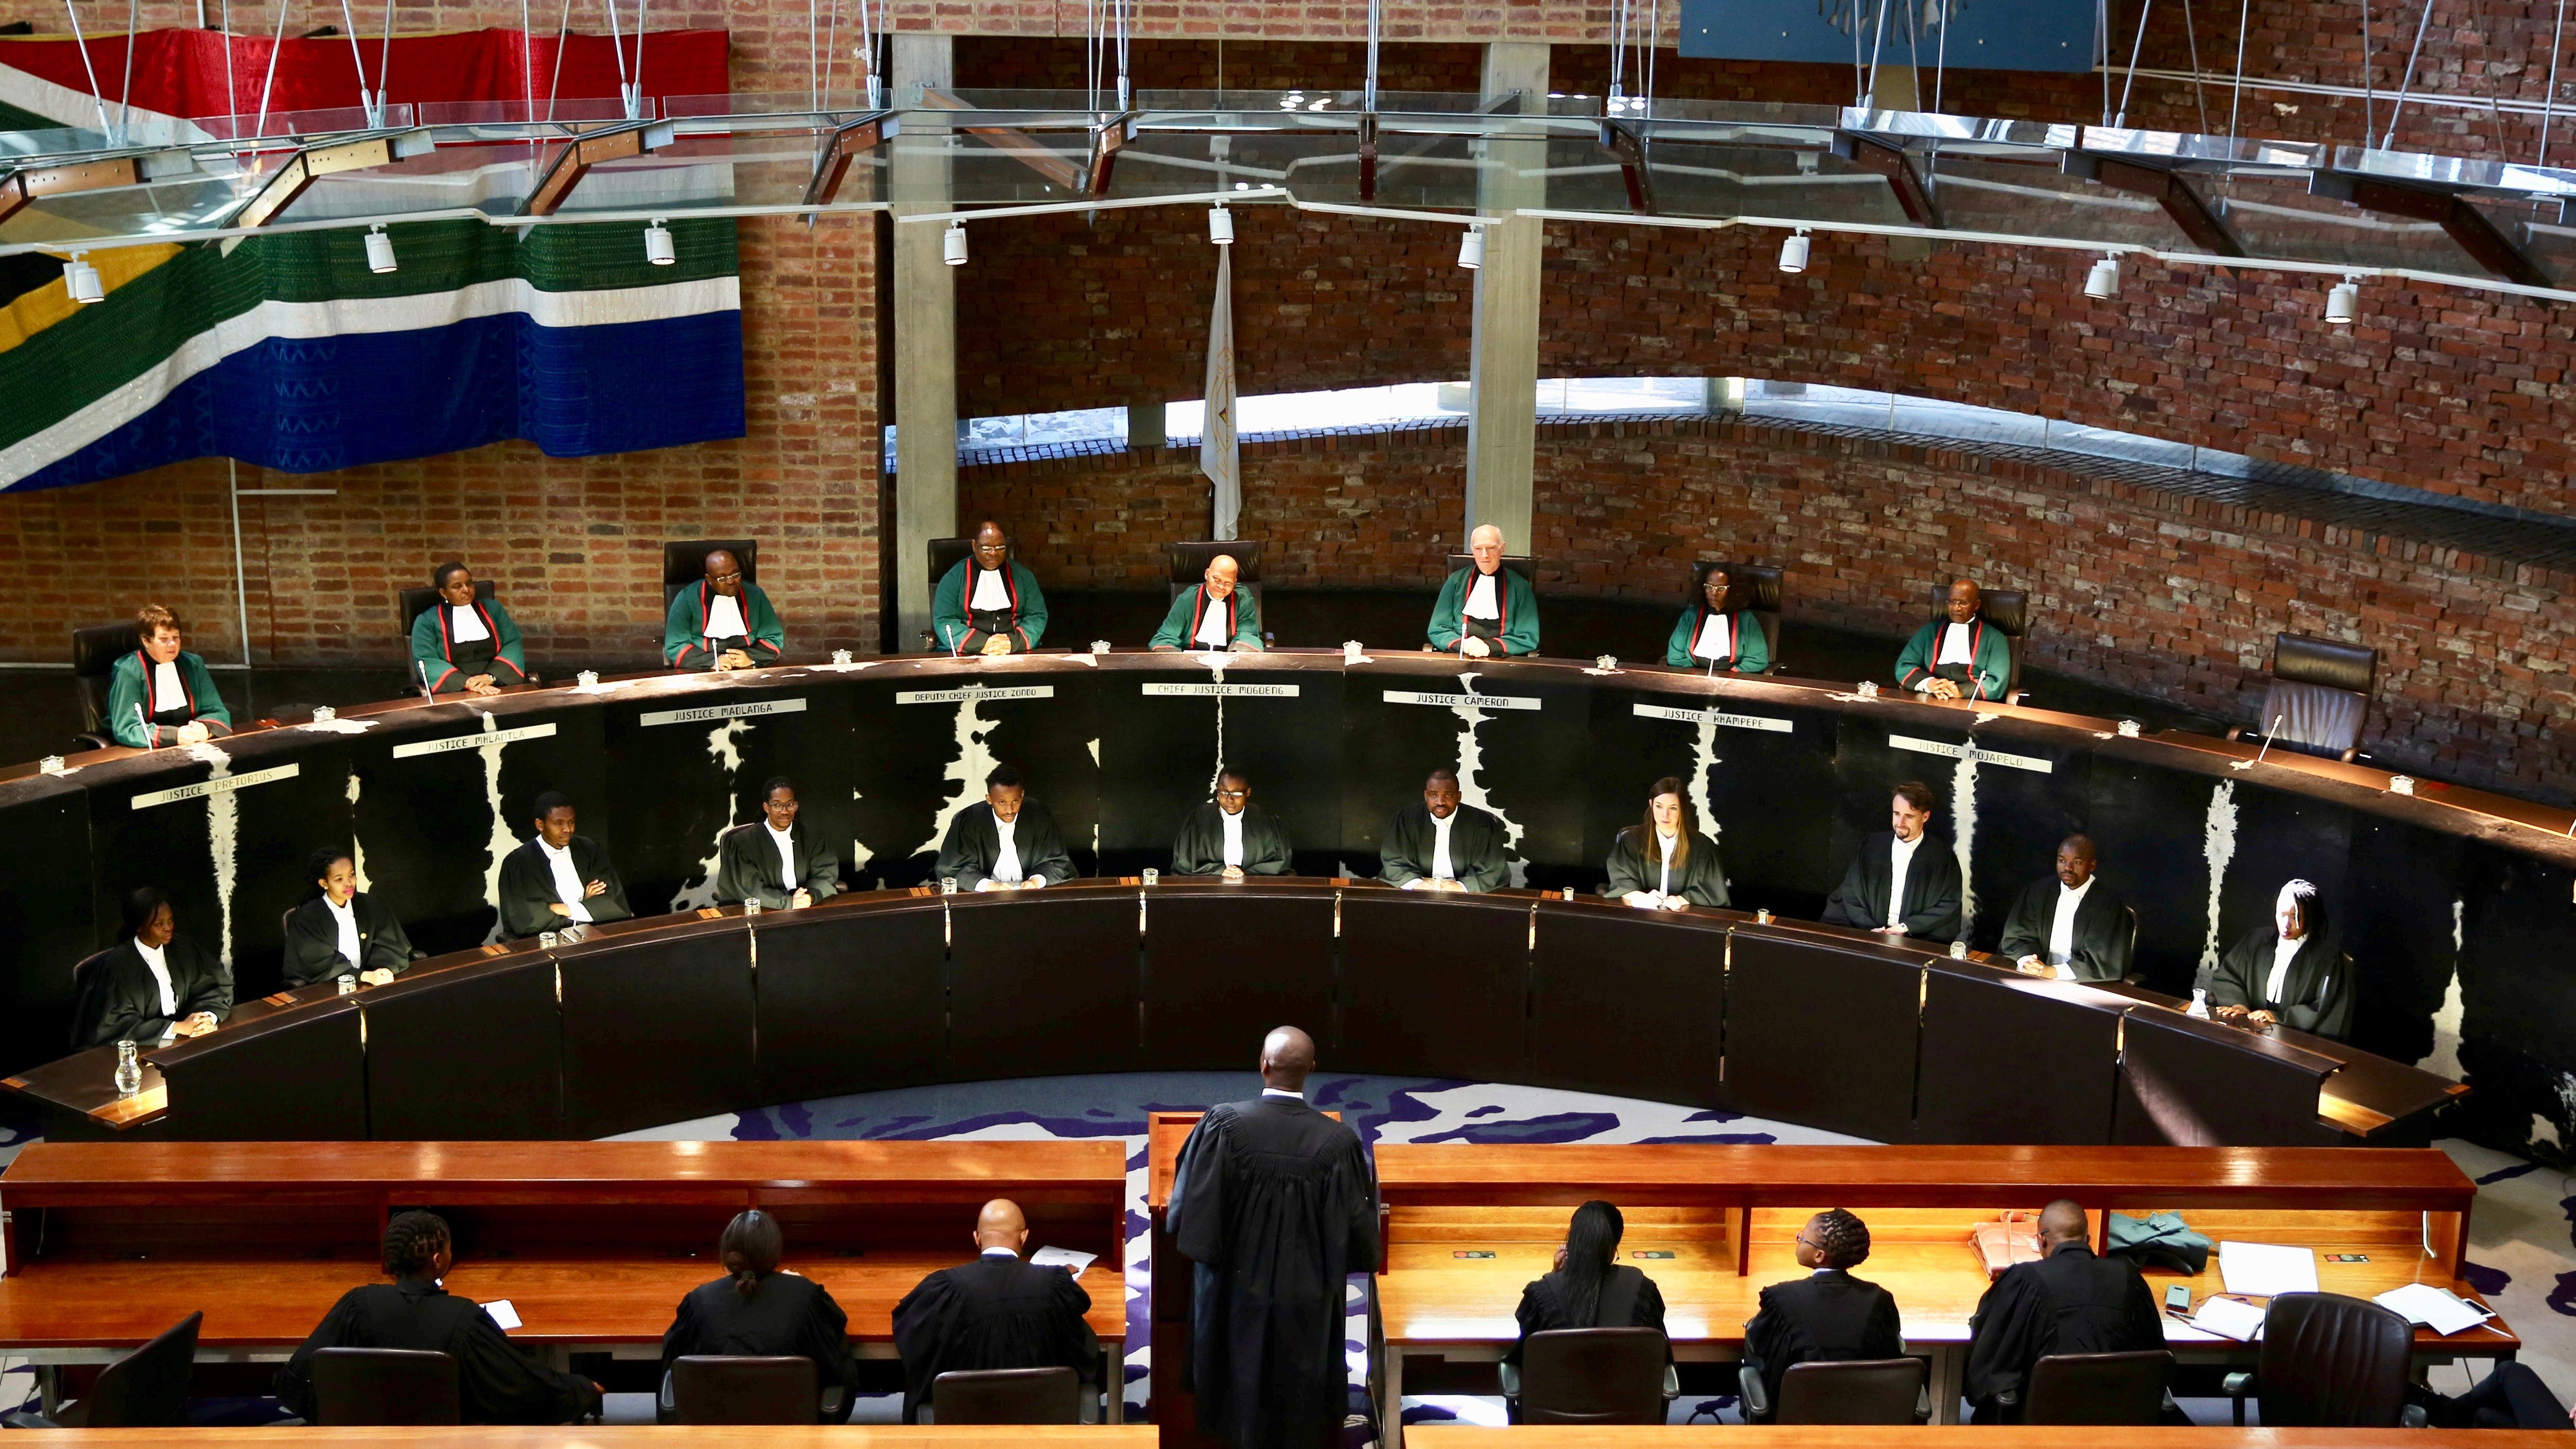 South Africa's Chief Justice Mogoeng Mogoeng (Top, C) looks on with other judges before making a ruling at the Constitutional Court in Johannesburg, South Africa ,June 22,2017.  REUTERS/Siphiwe Sibeko - RTS18686